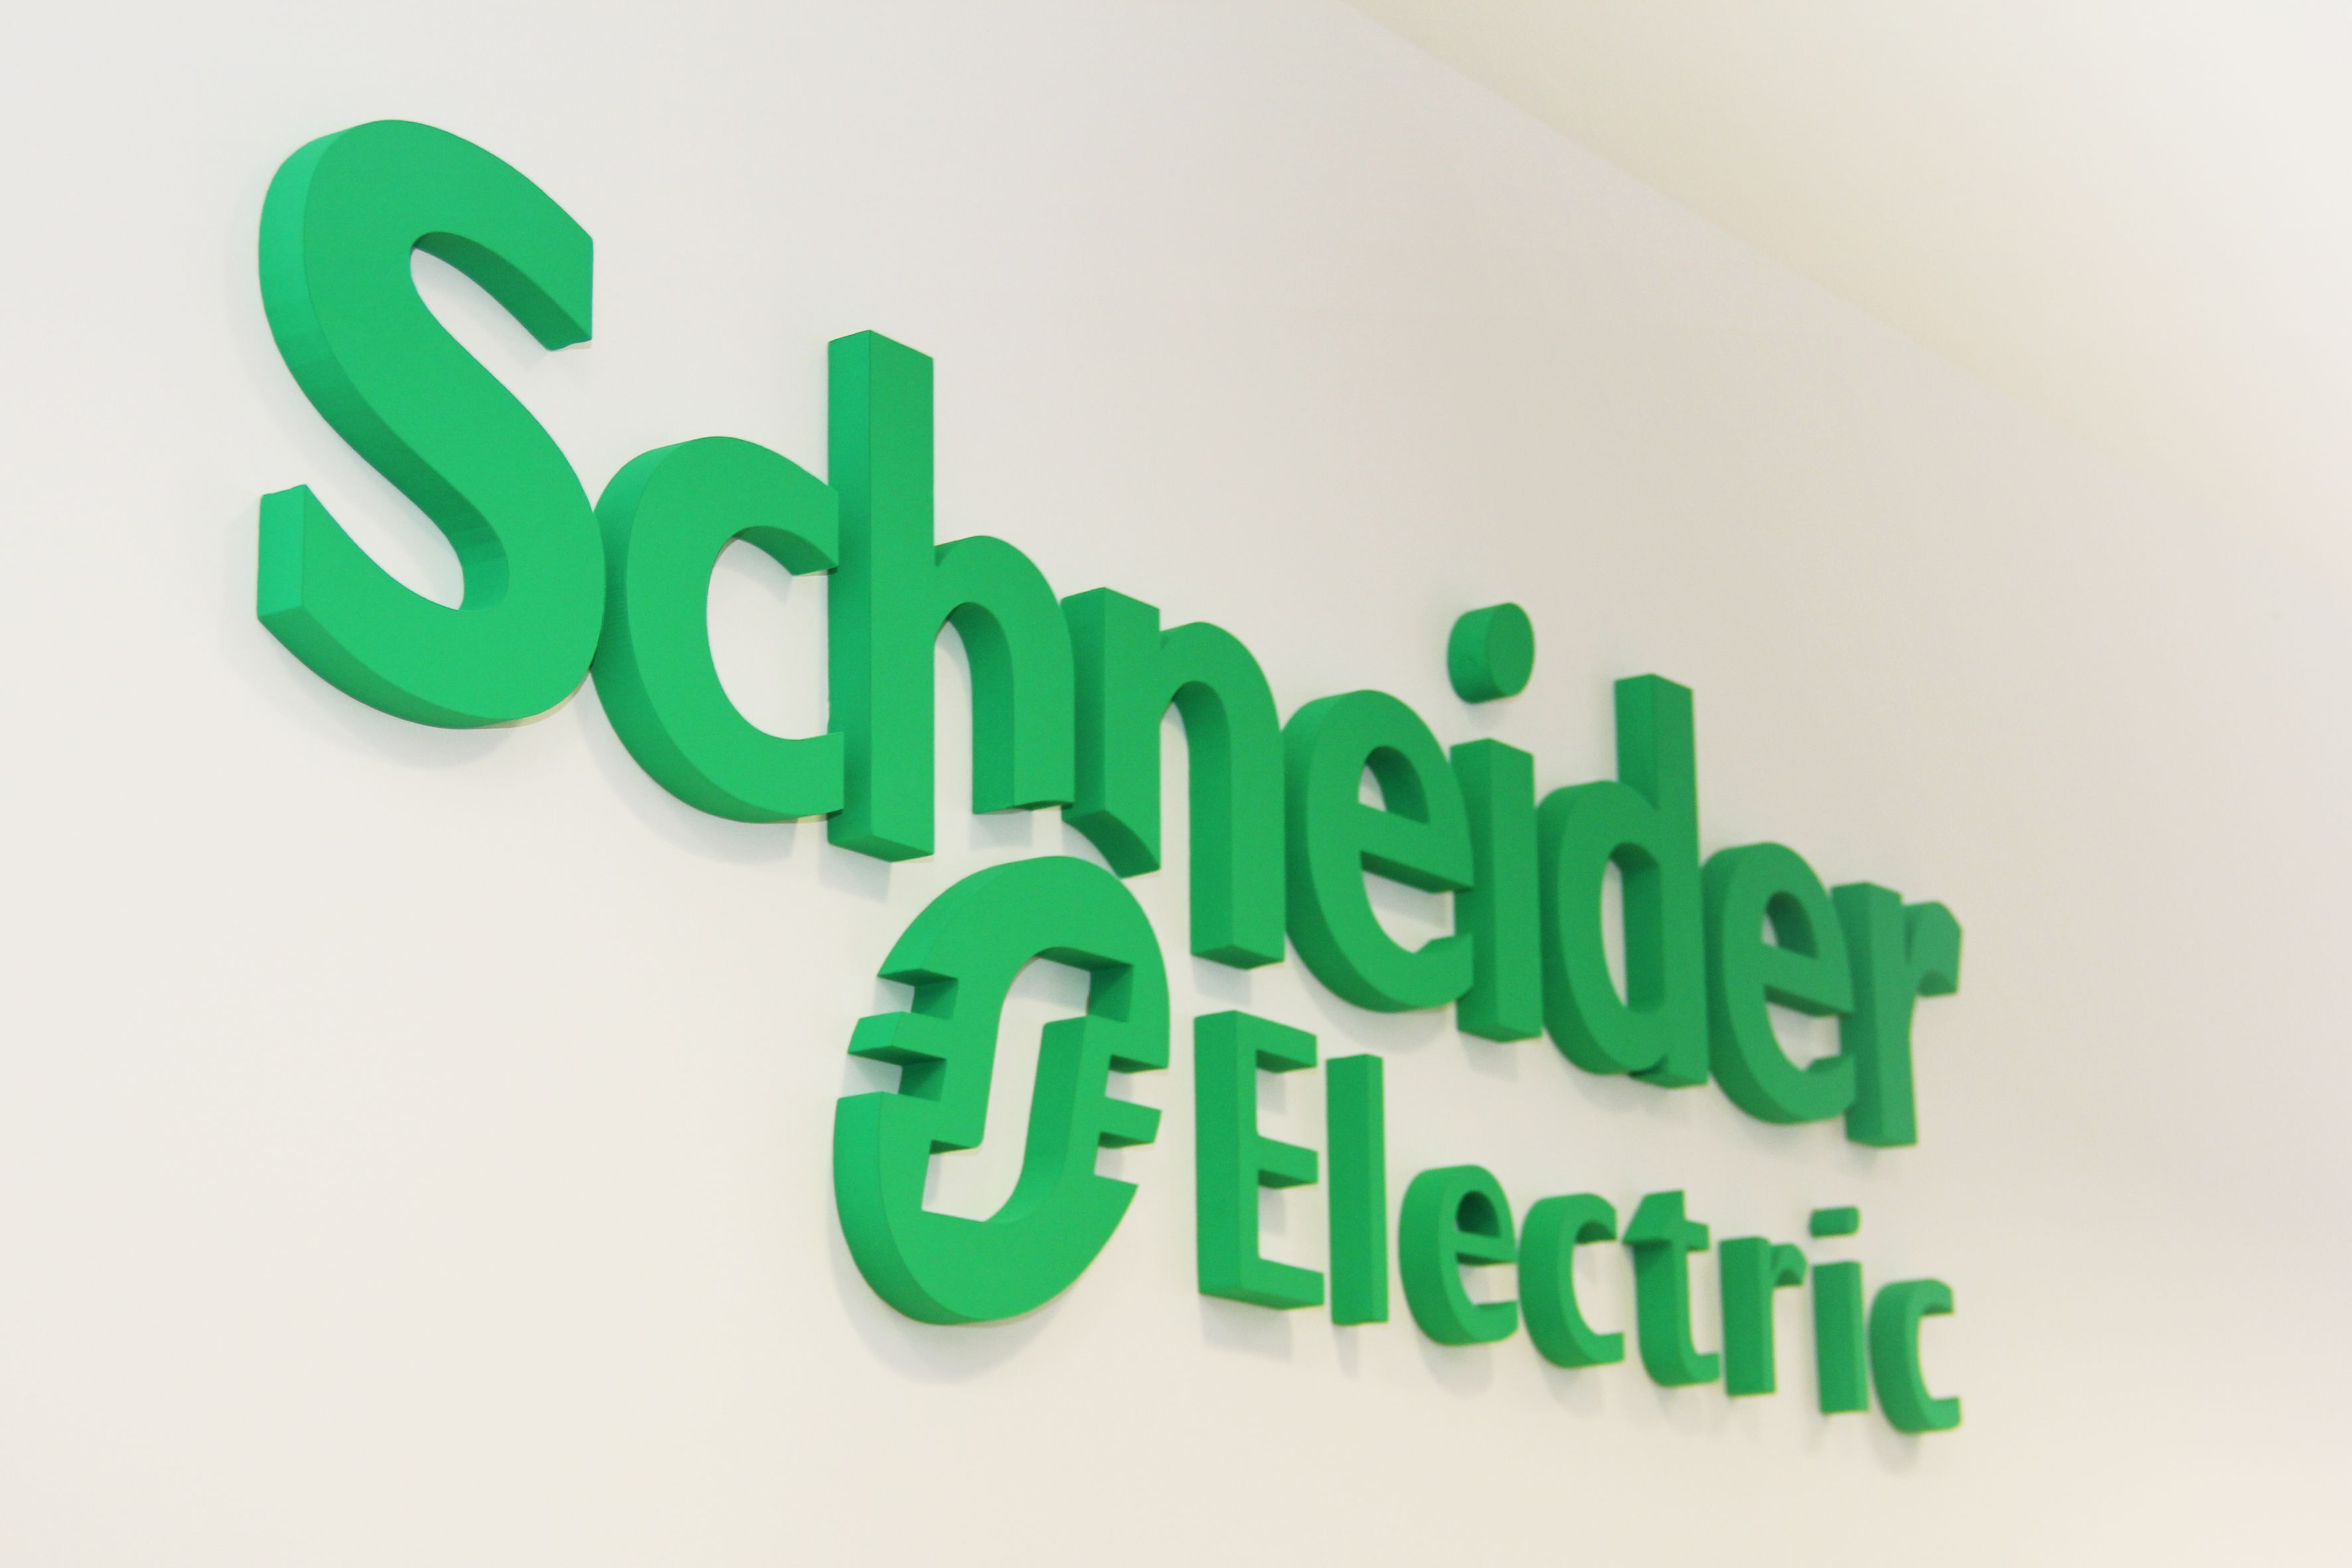 Schneider Electric1